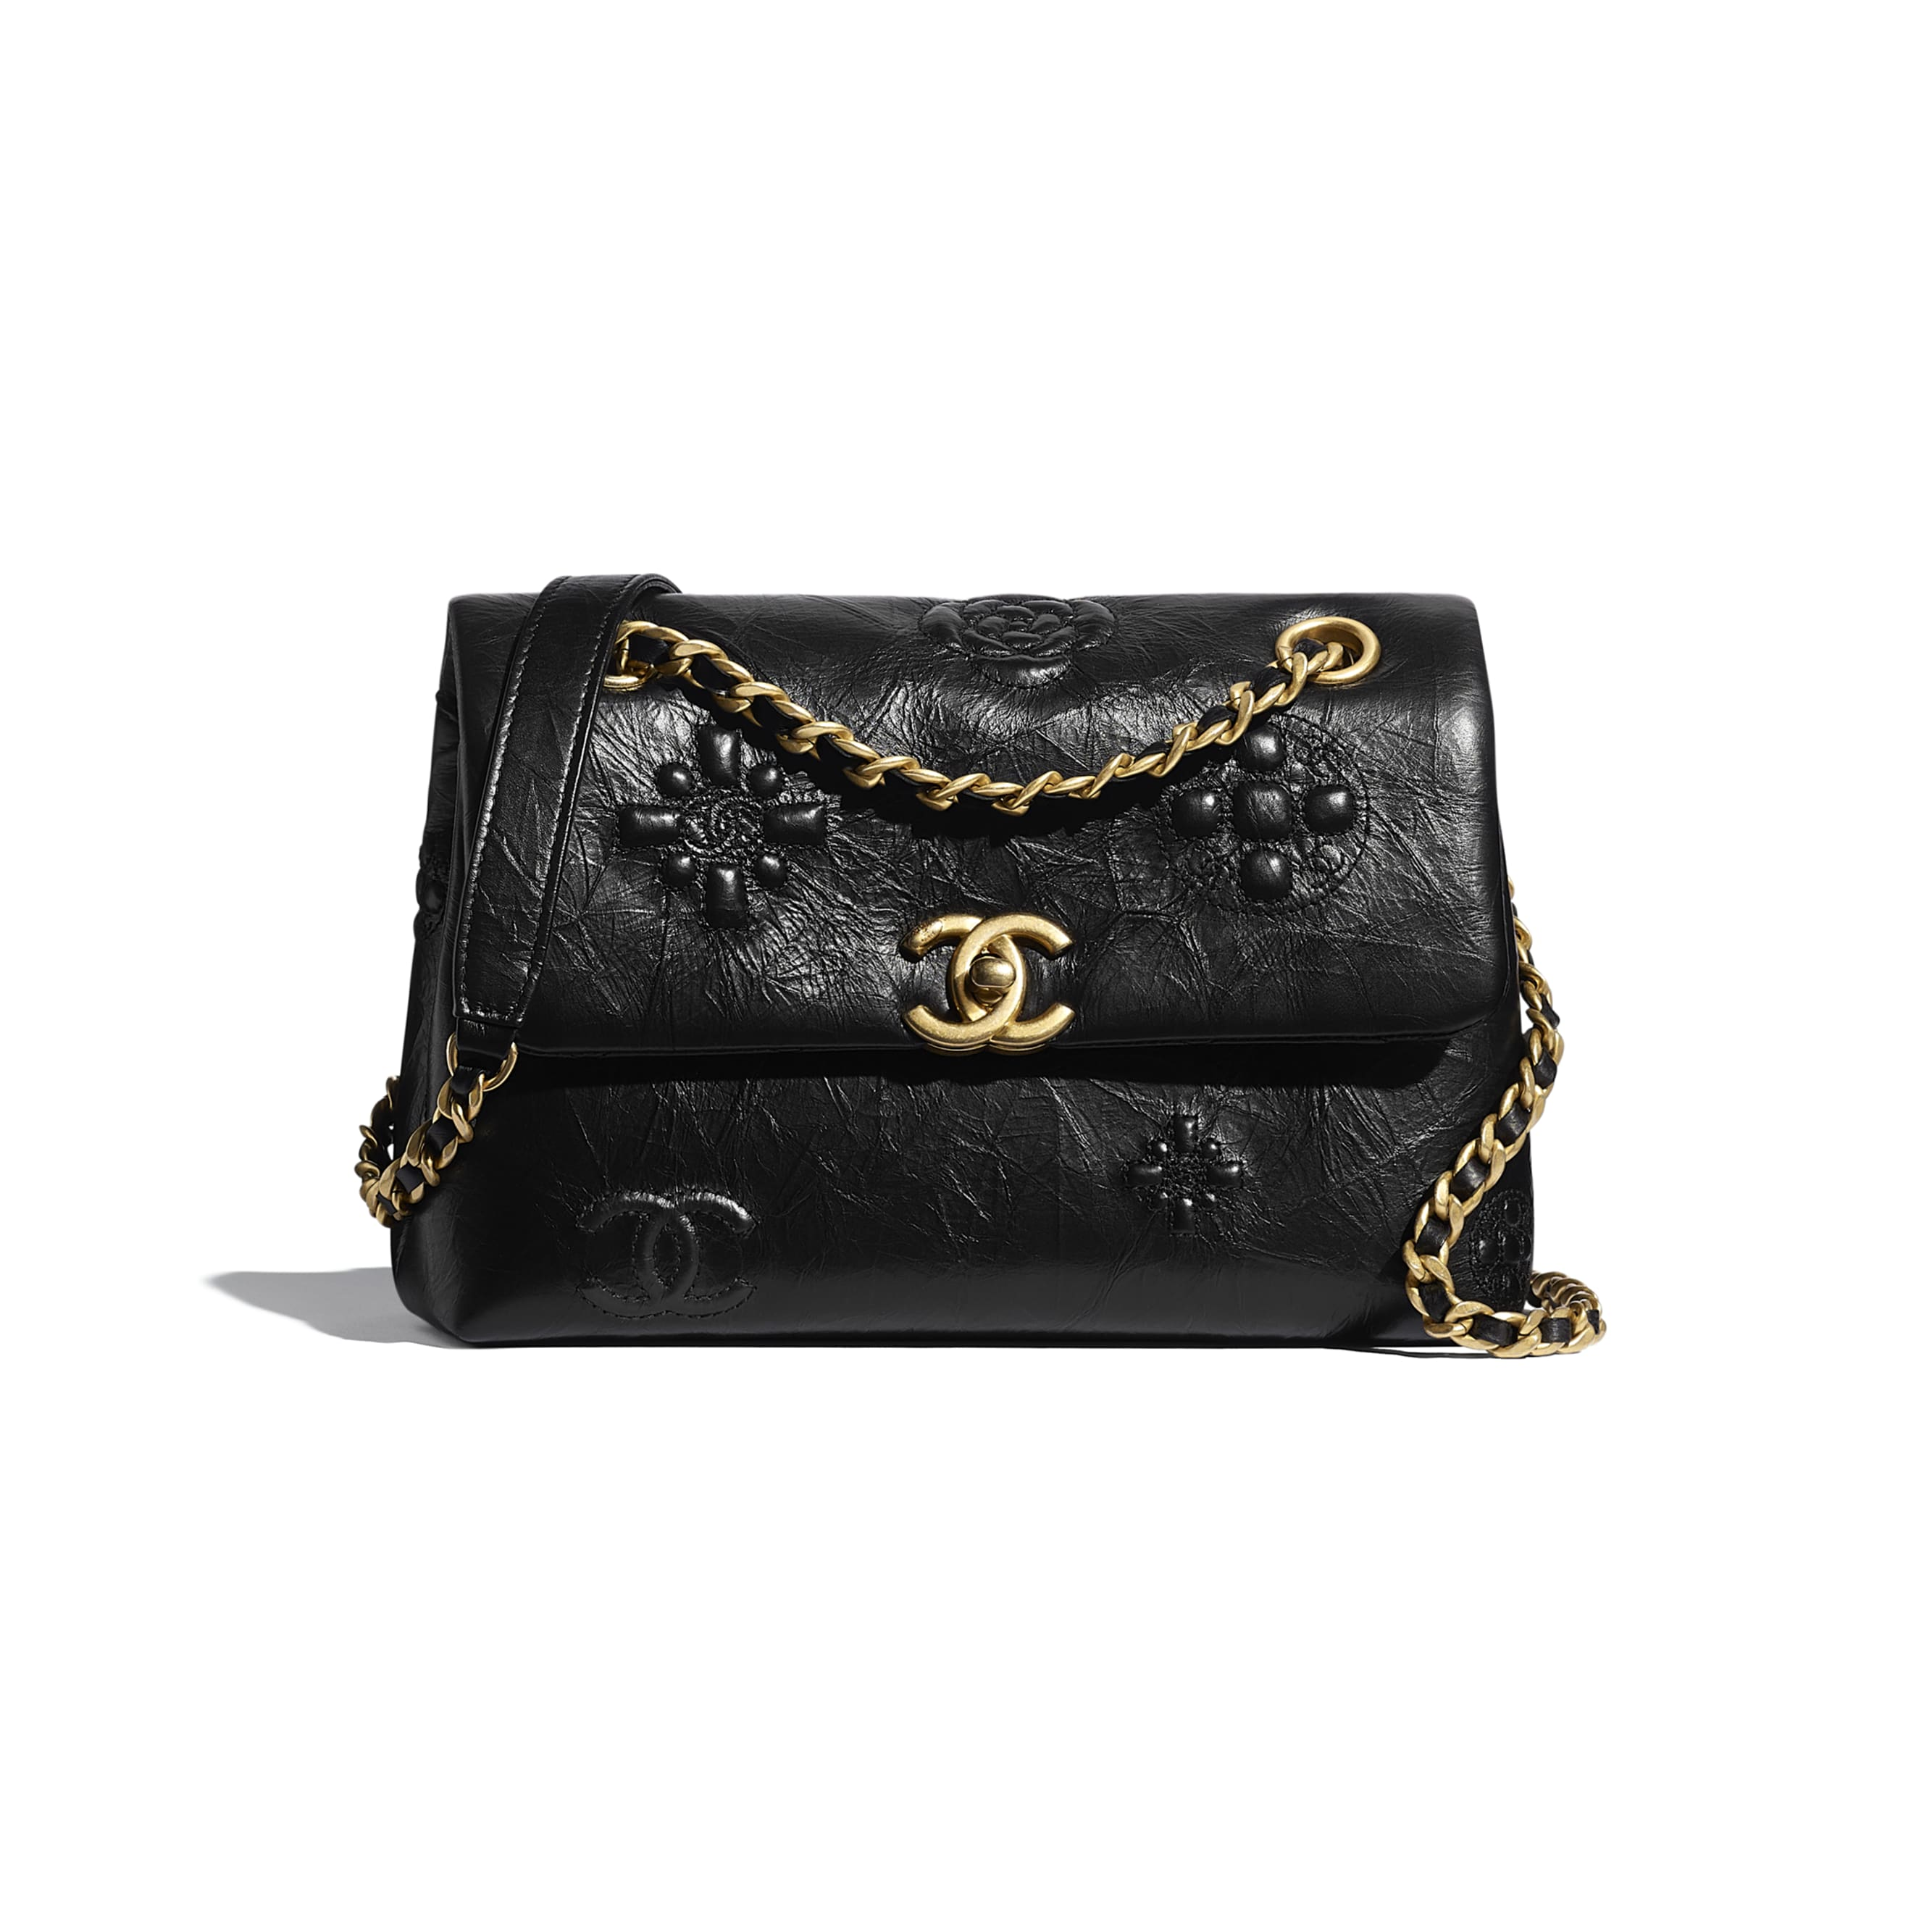 Small Flap Bag - Black - Crumpled Calfskin & Gold Metal - CHANEL - Default view - see standard sized version